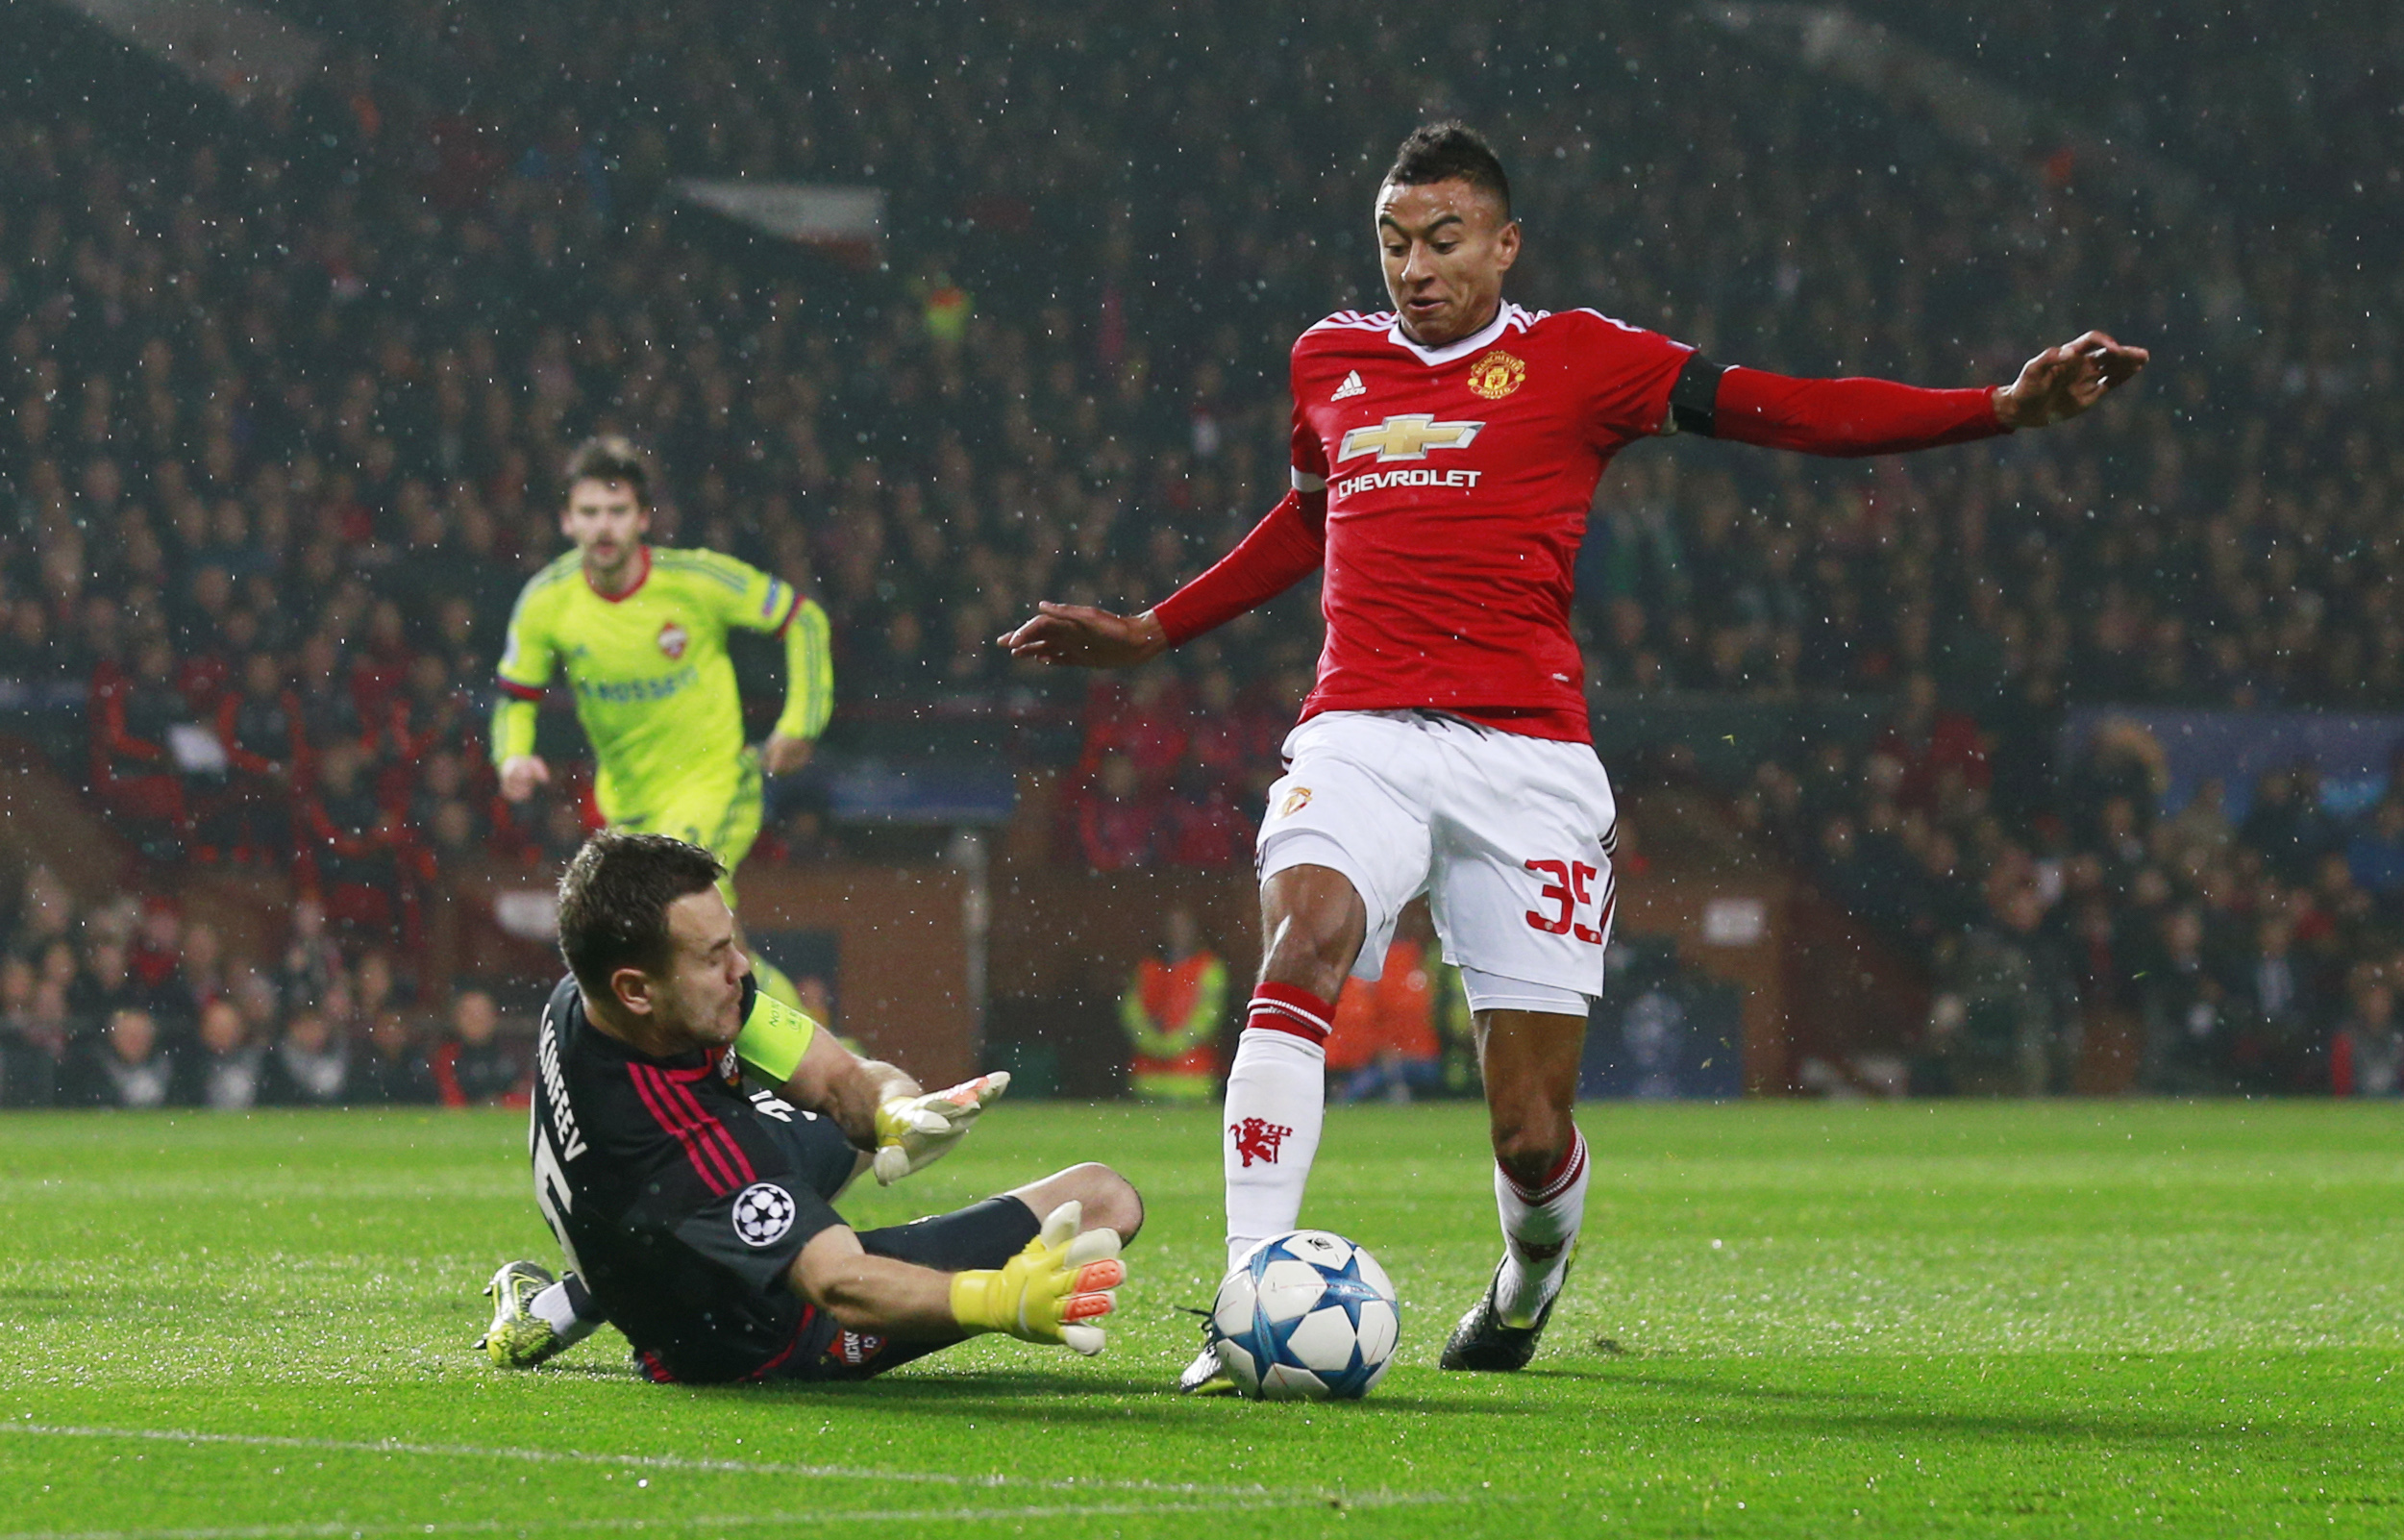 Manchester United's Jesse Lingard and CSKA Moscow's Igor Akinfeev in action during UEFA Champions League game at Old Trafford on November 3, 2016. Photo: Reuters